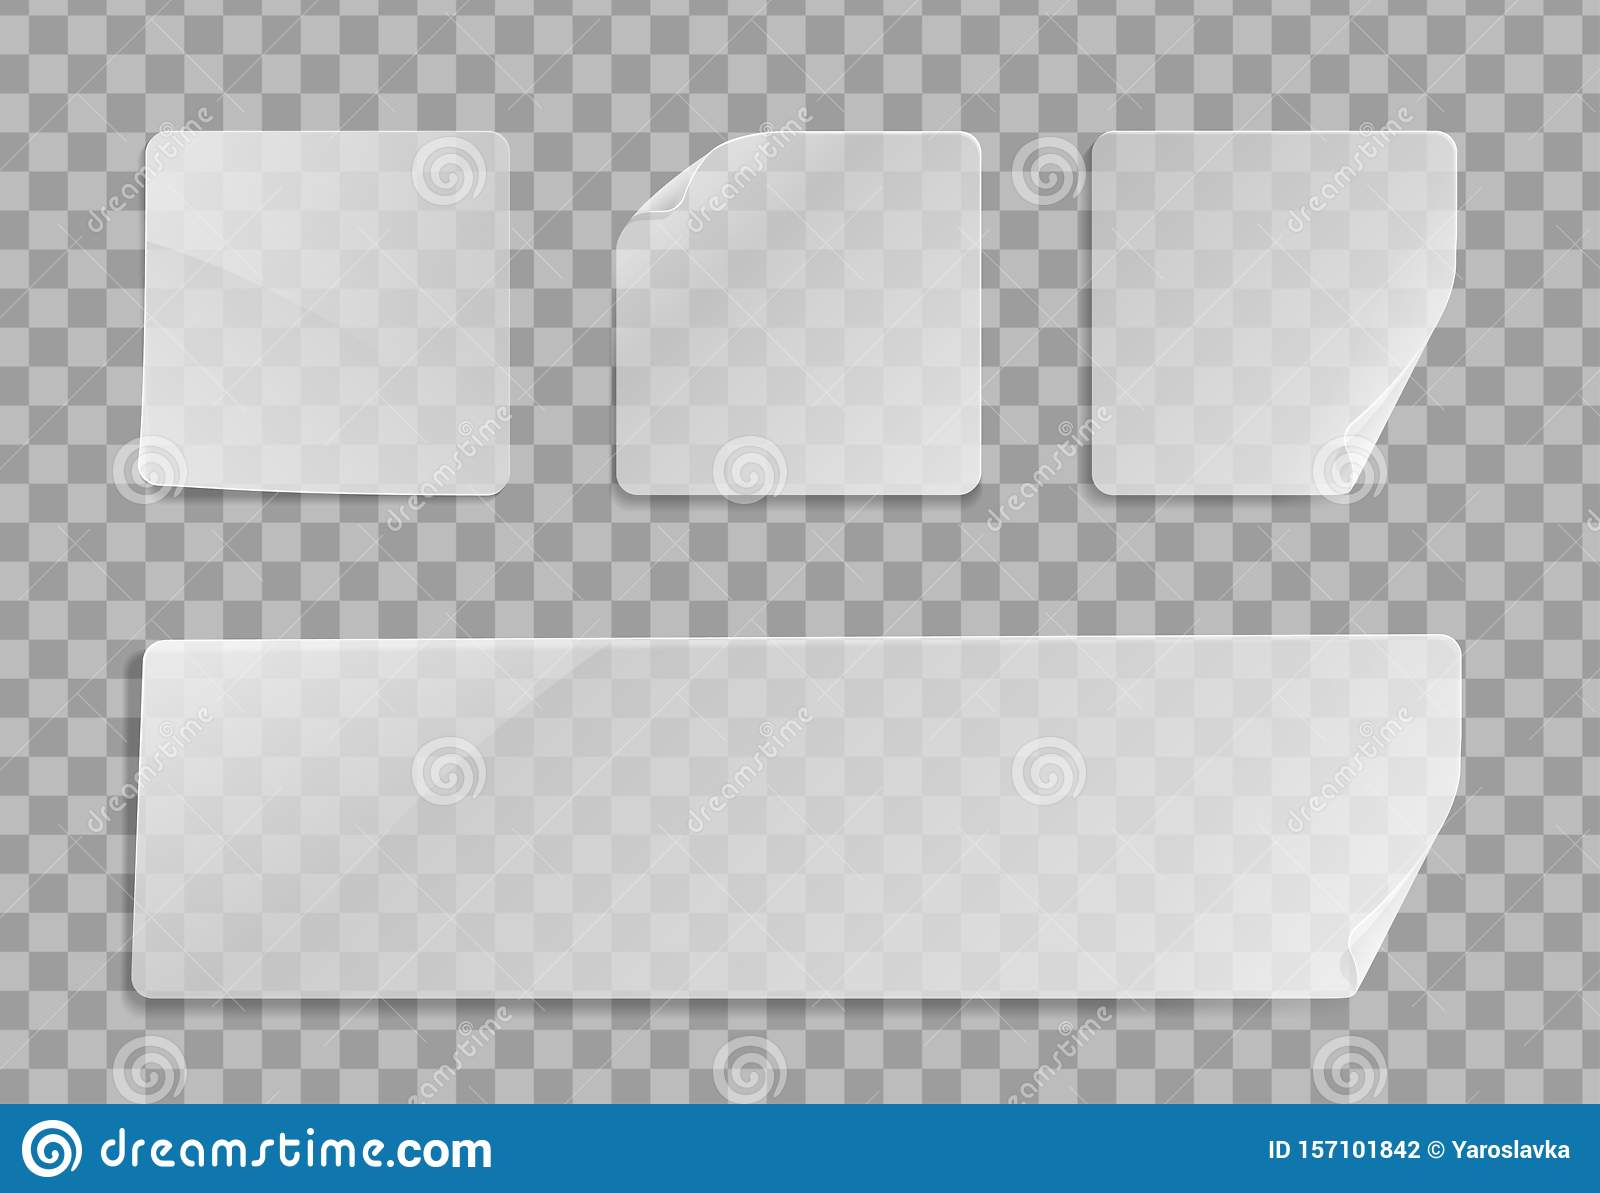 Vector Blank Transparent Plastic Square Adhesive Sticker Mock Up With Curved Corner  Empty